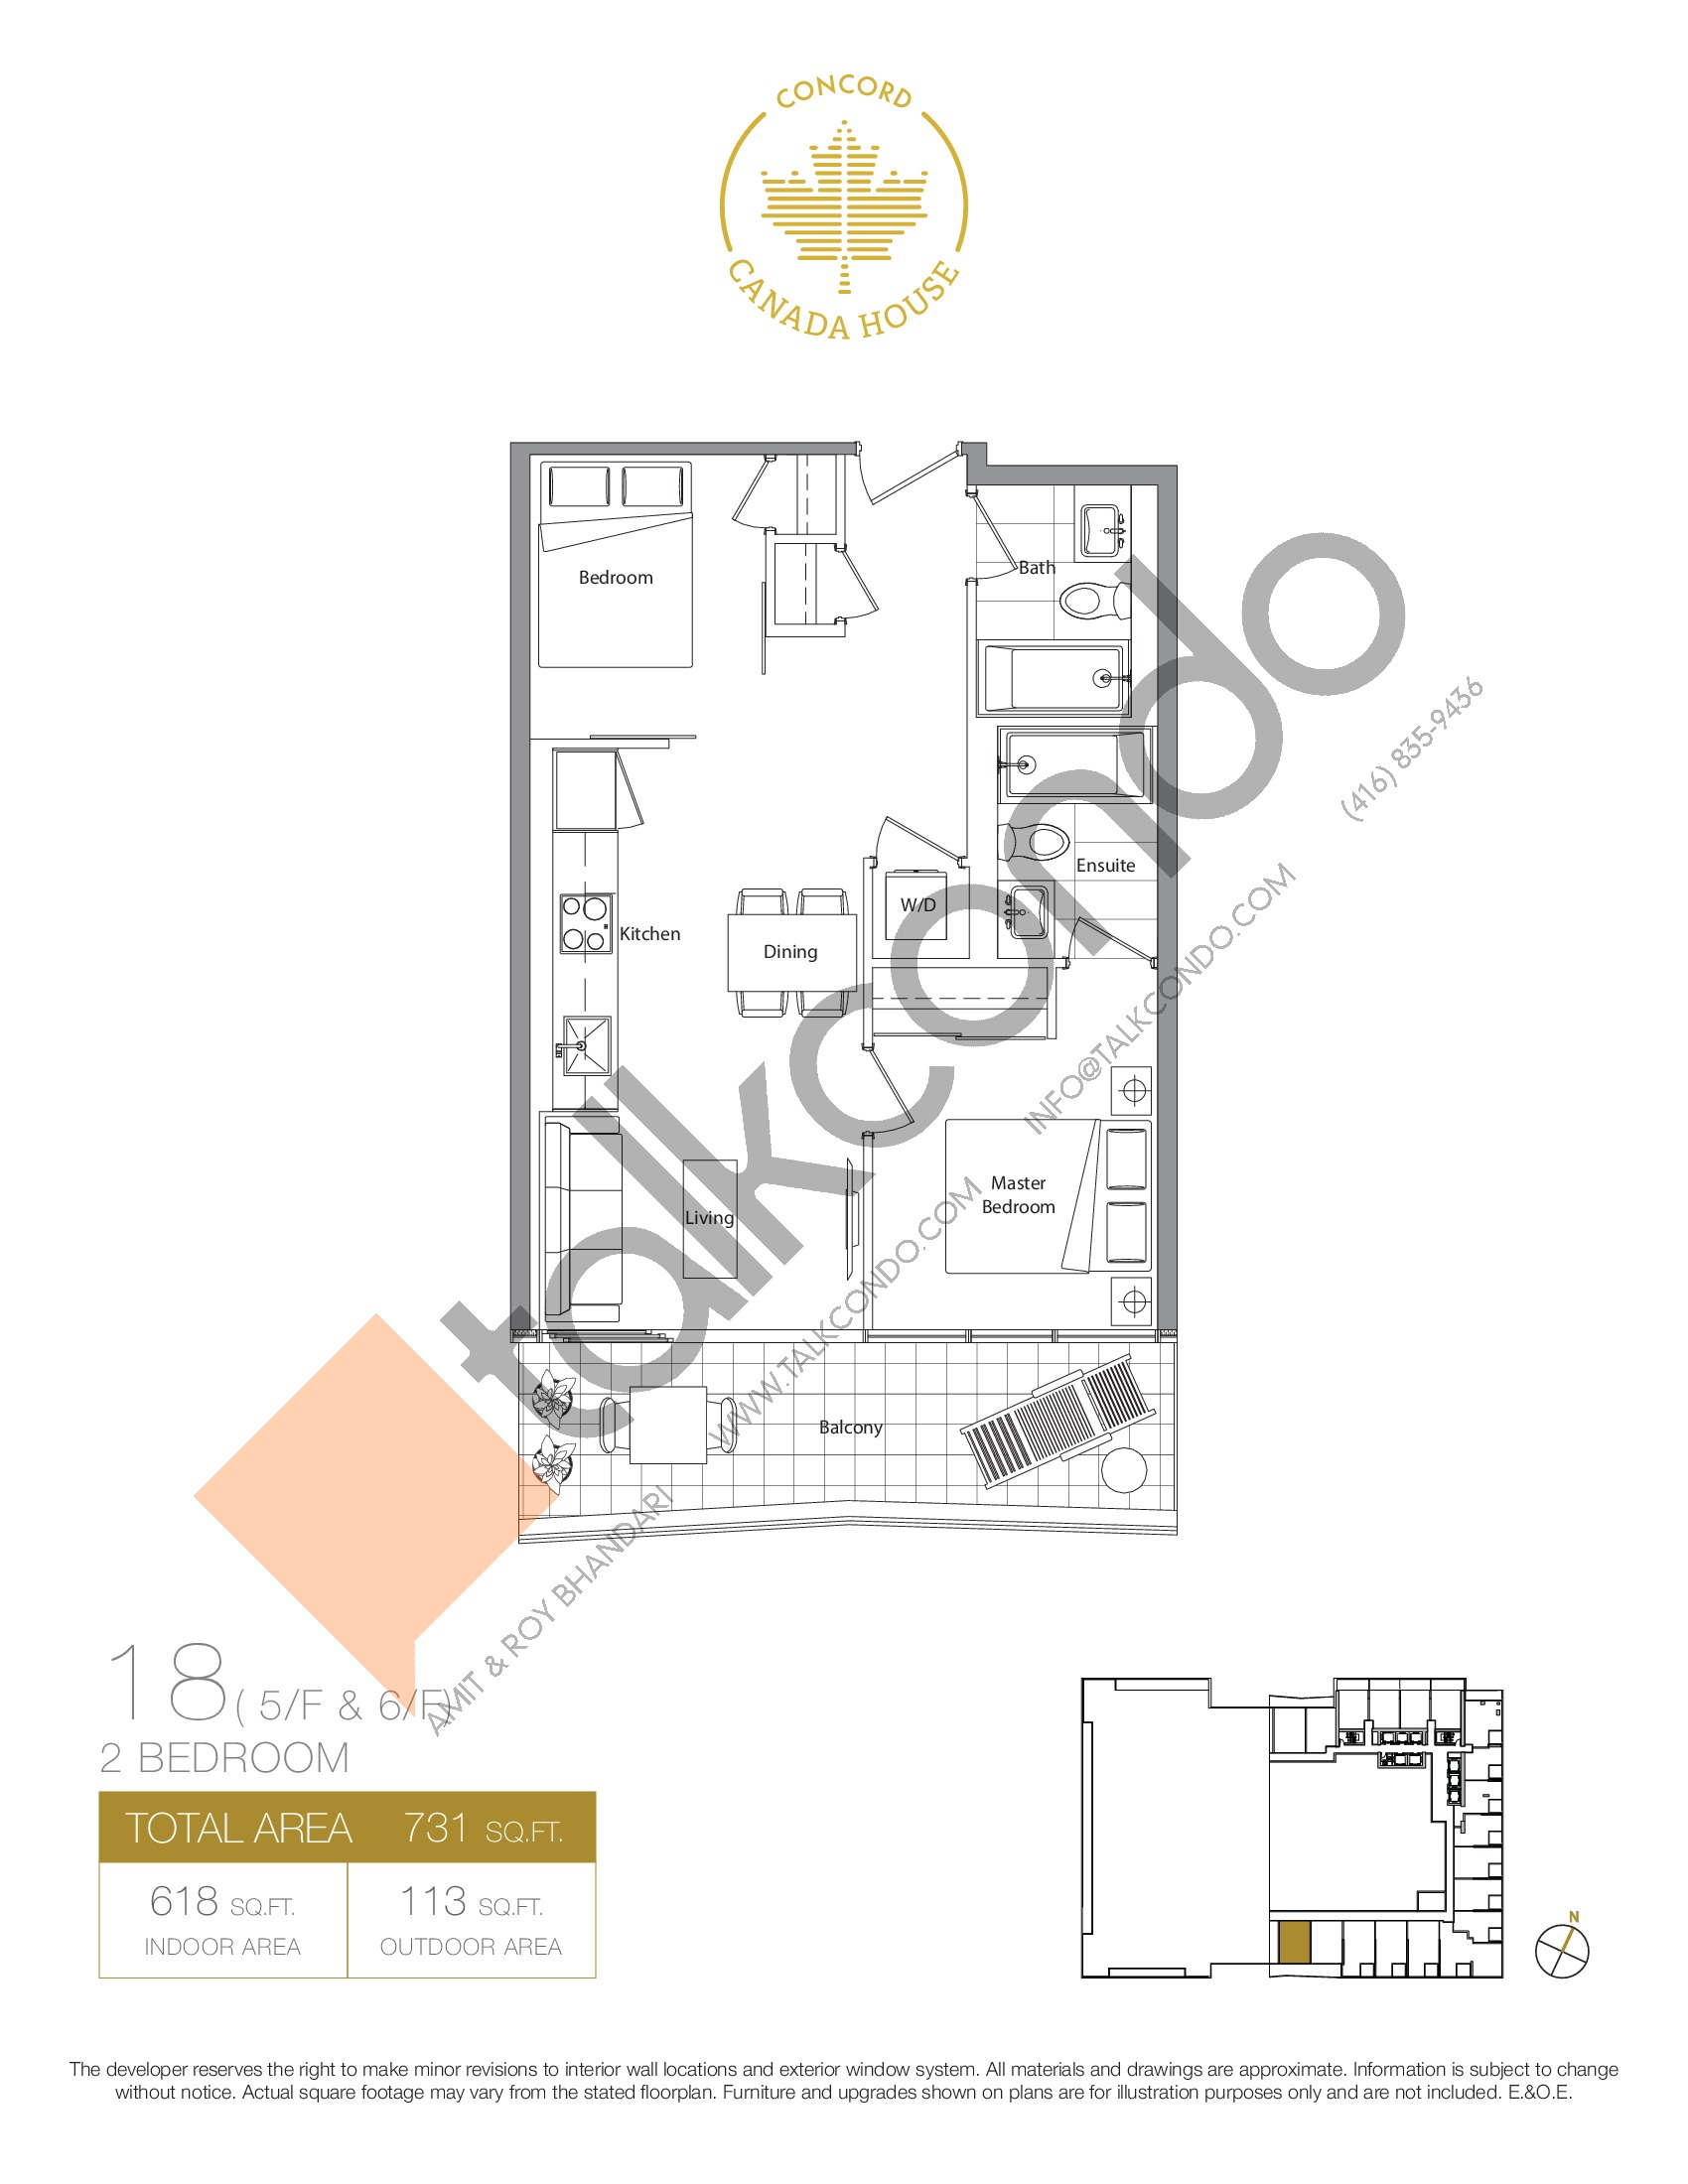 18 - East Tower Floor Plan at Concord Canada House Condos - 618 sq.ft